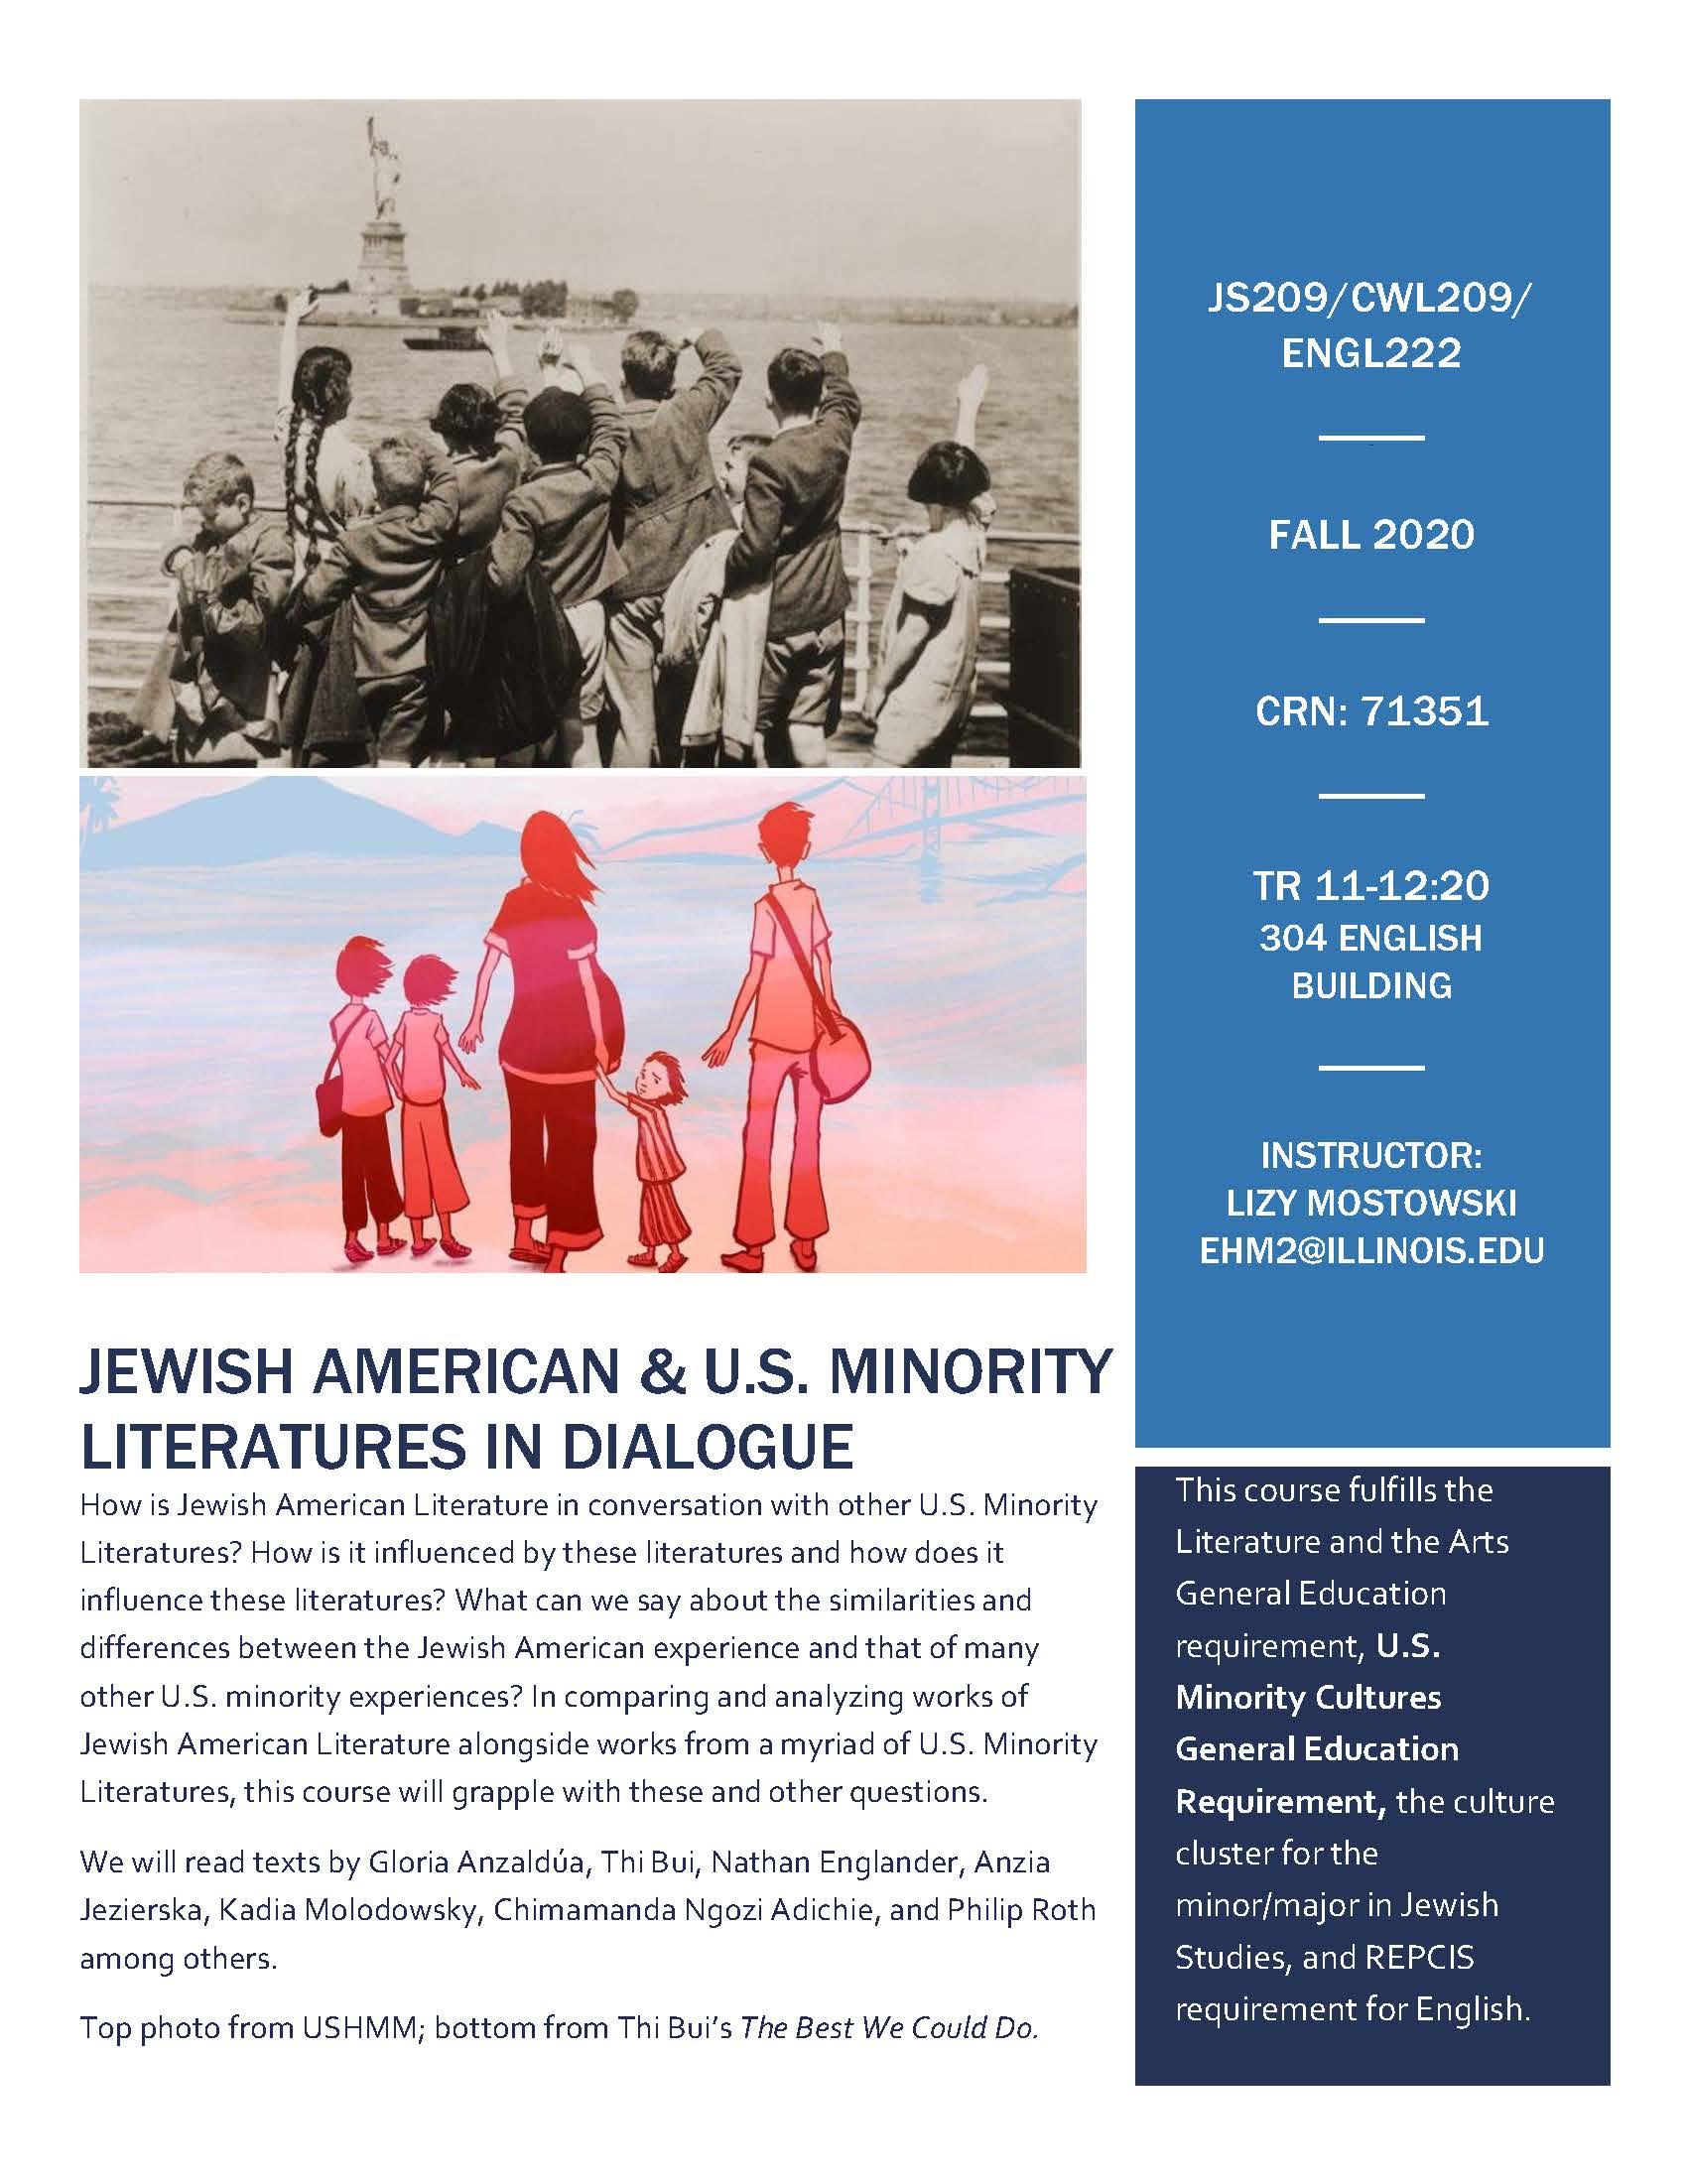 JS 209 Fall Course Flyer